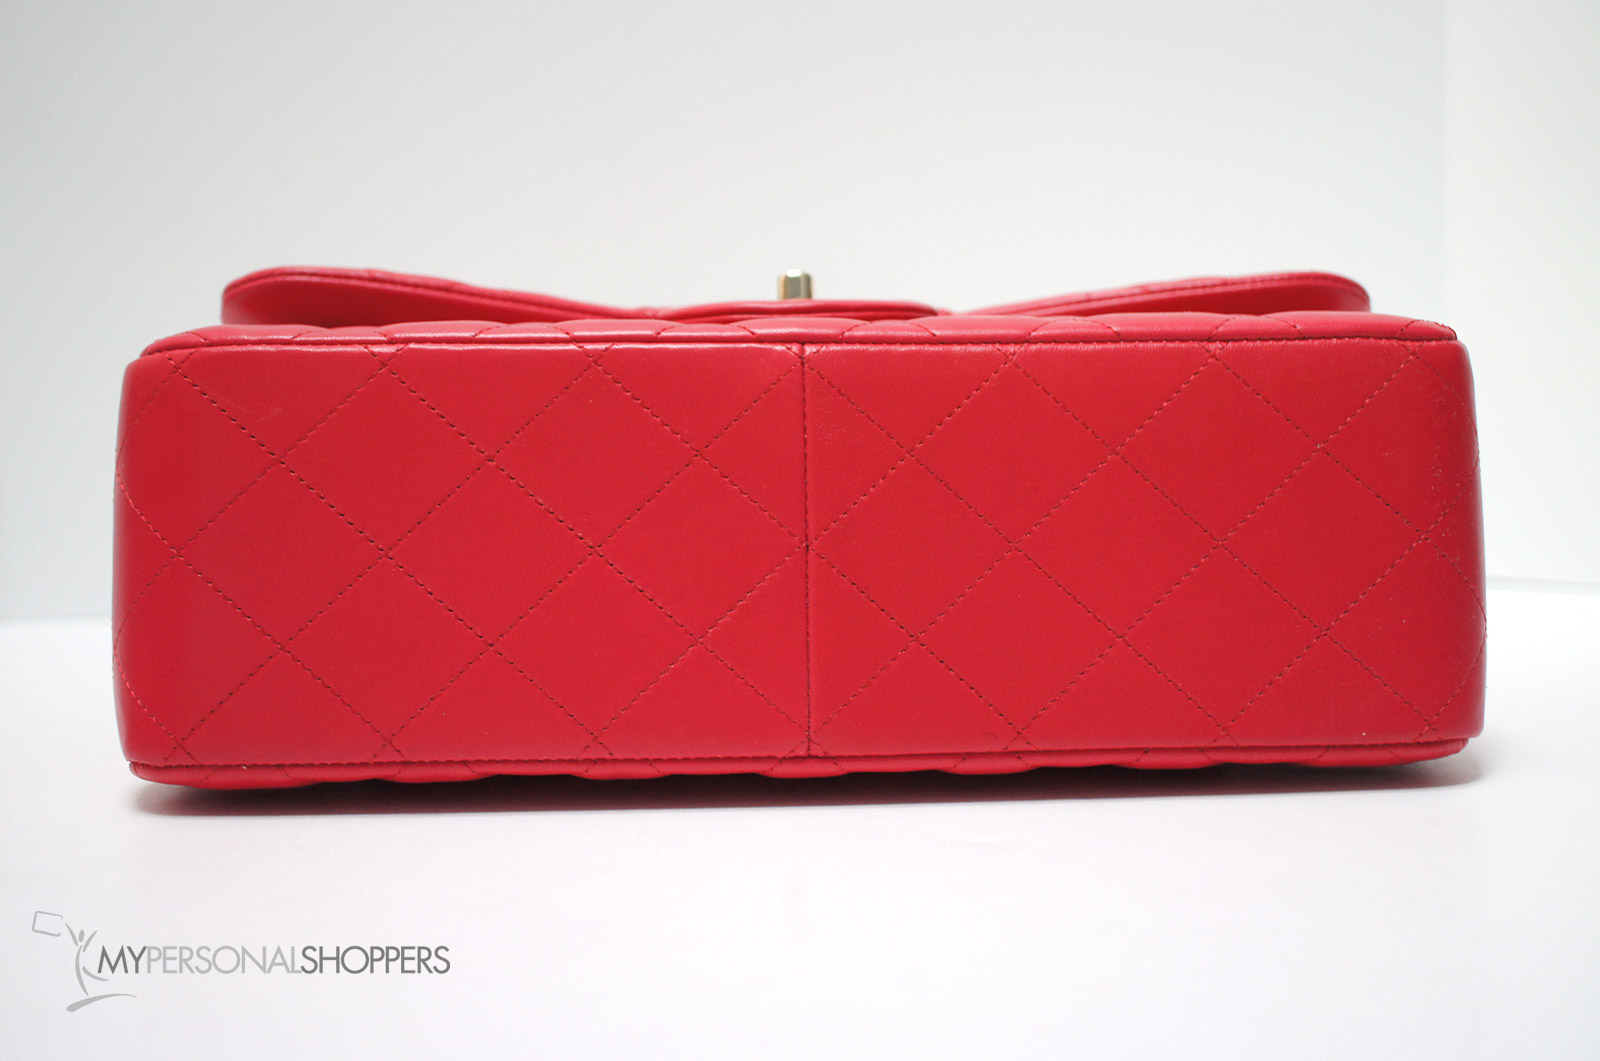 3bd0611fb78e7c Chanel 16C Red Lambskin Leather GHW Classic Jumbo Flap Bag, New ...